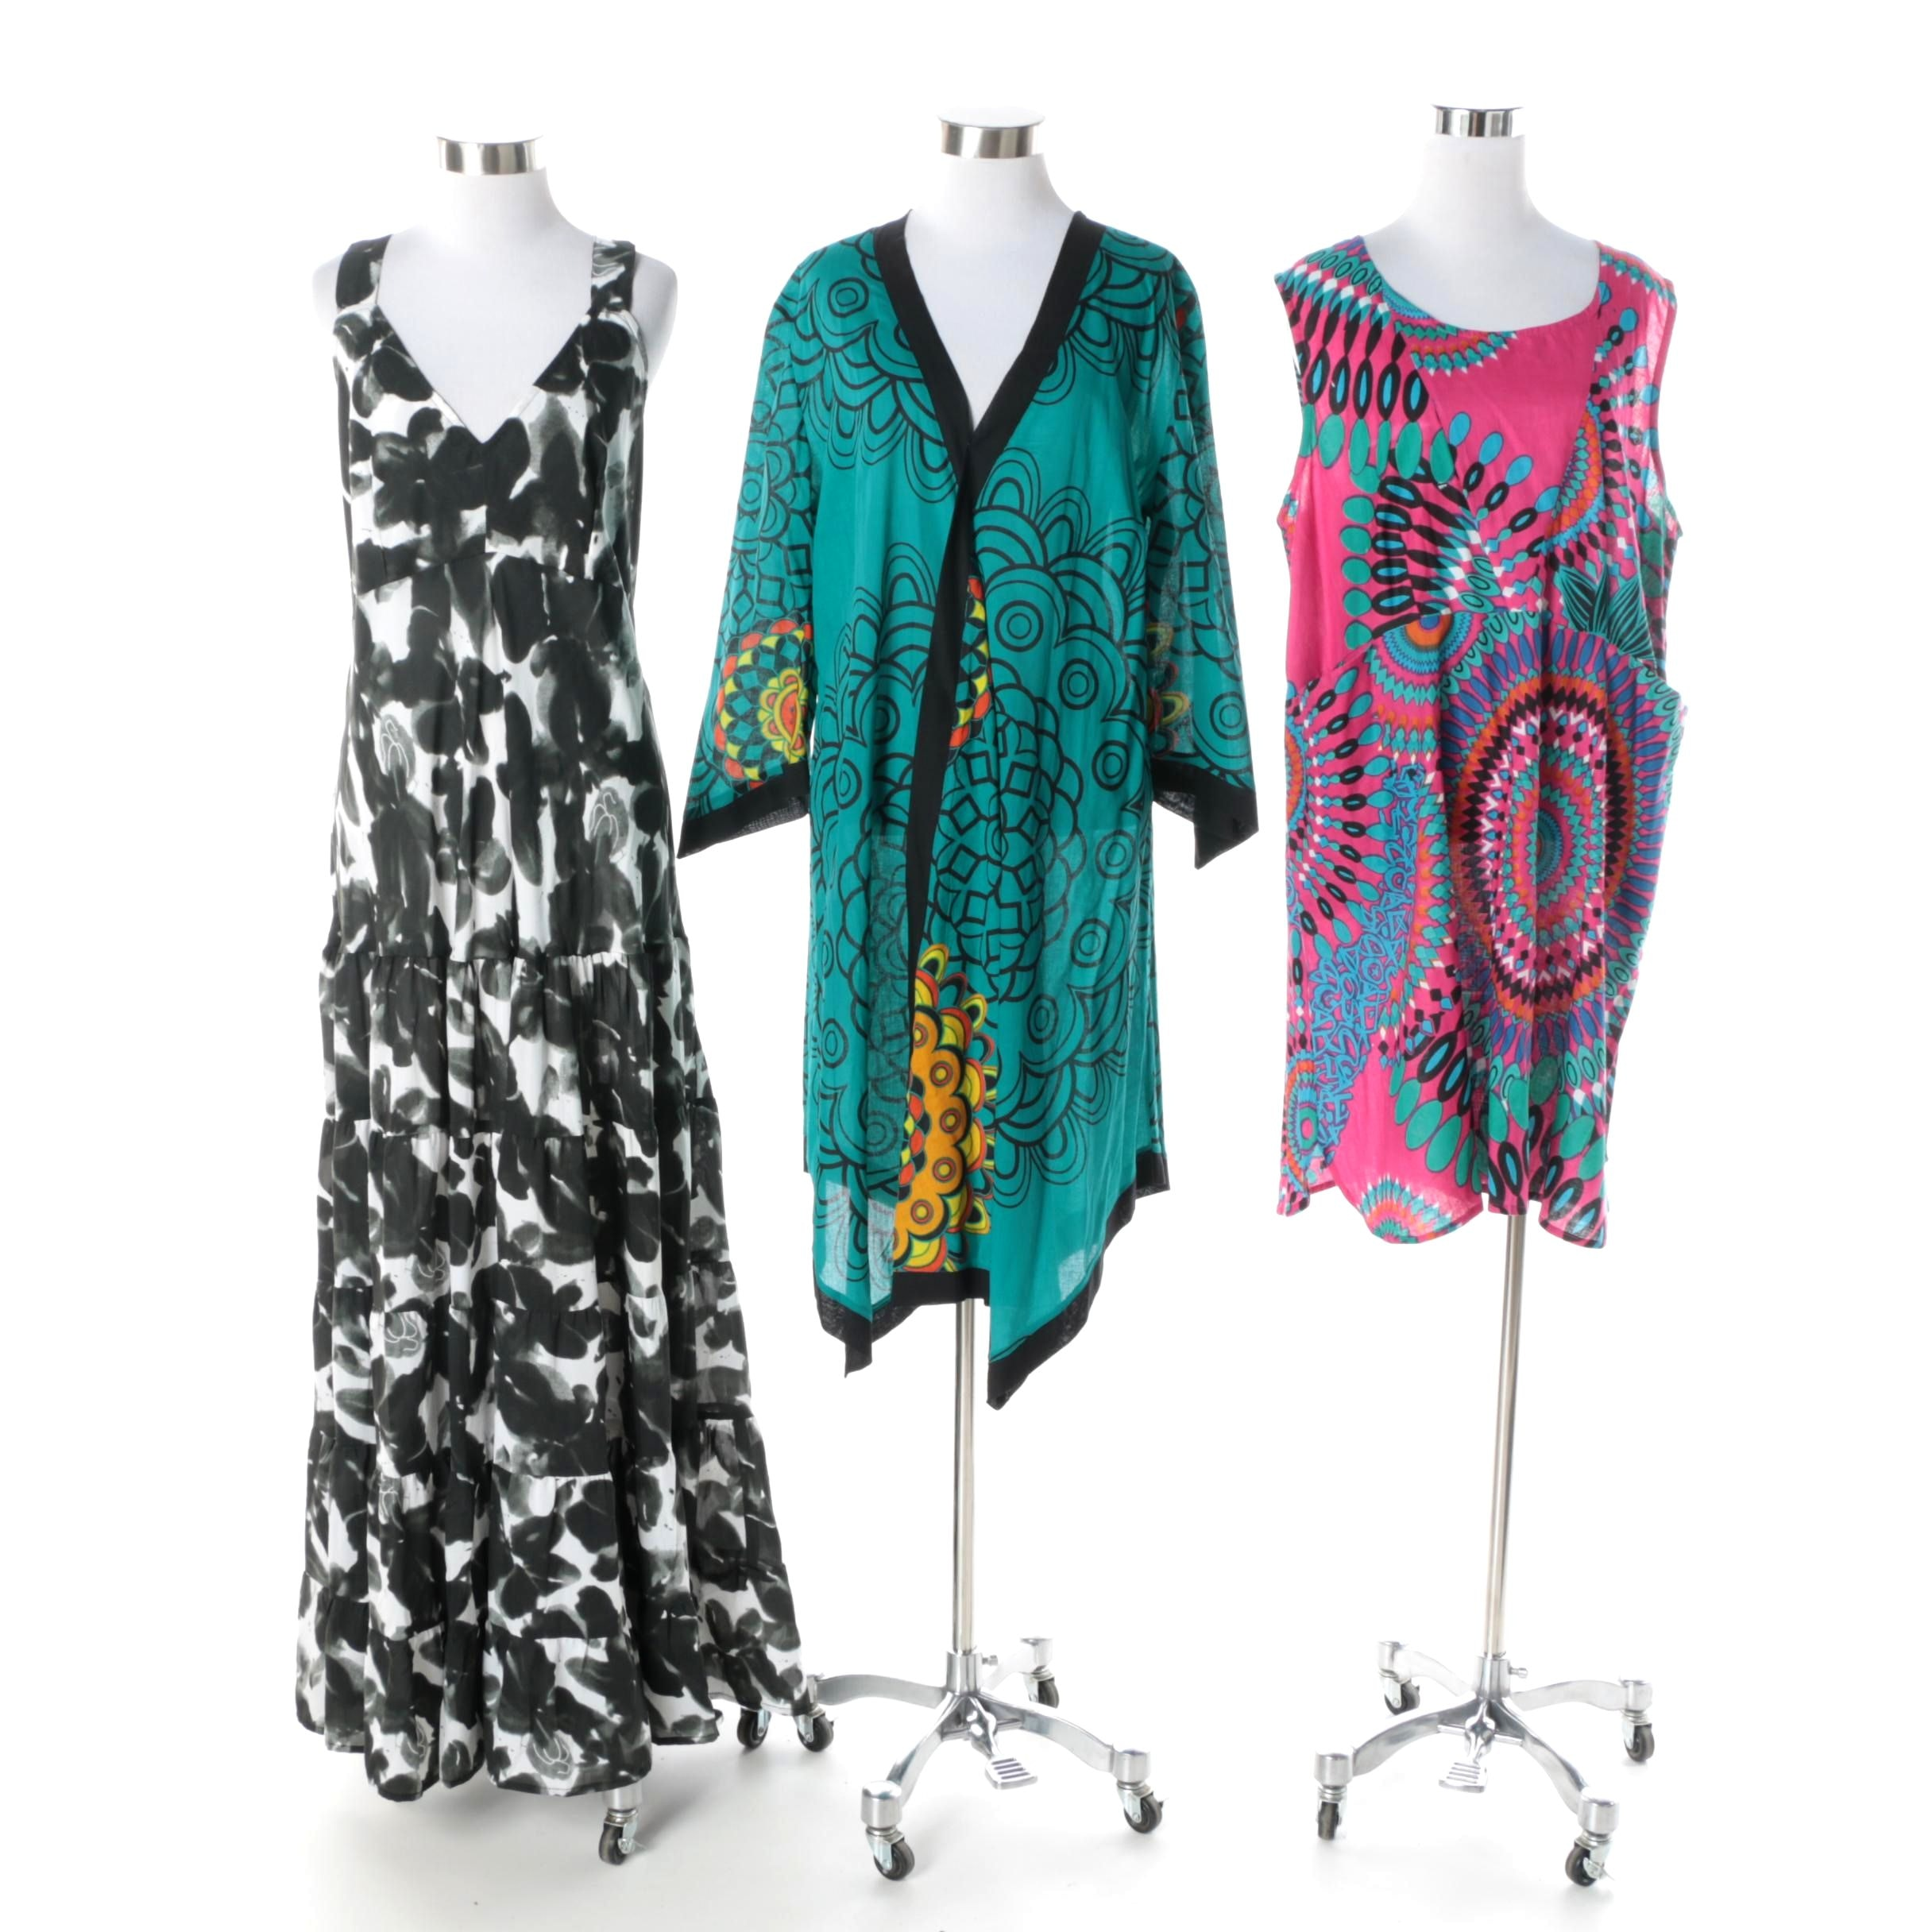 Aller Simplement Dresses Including Black and White Painterly Floral Tiered Maxi